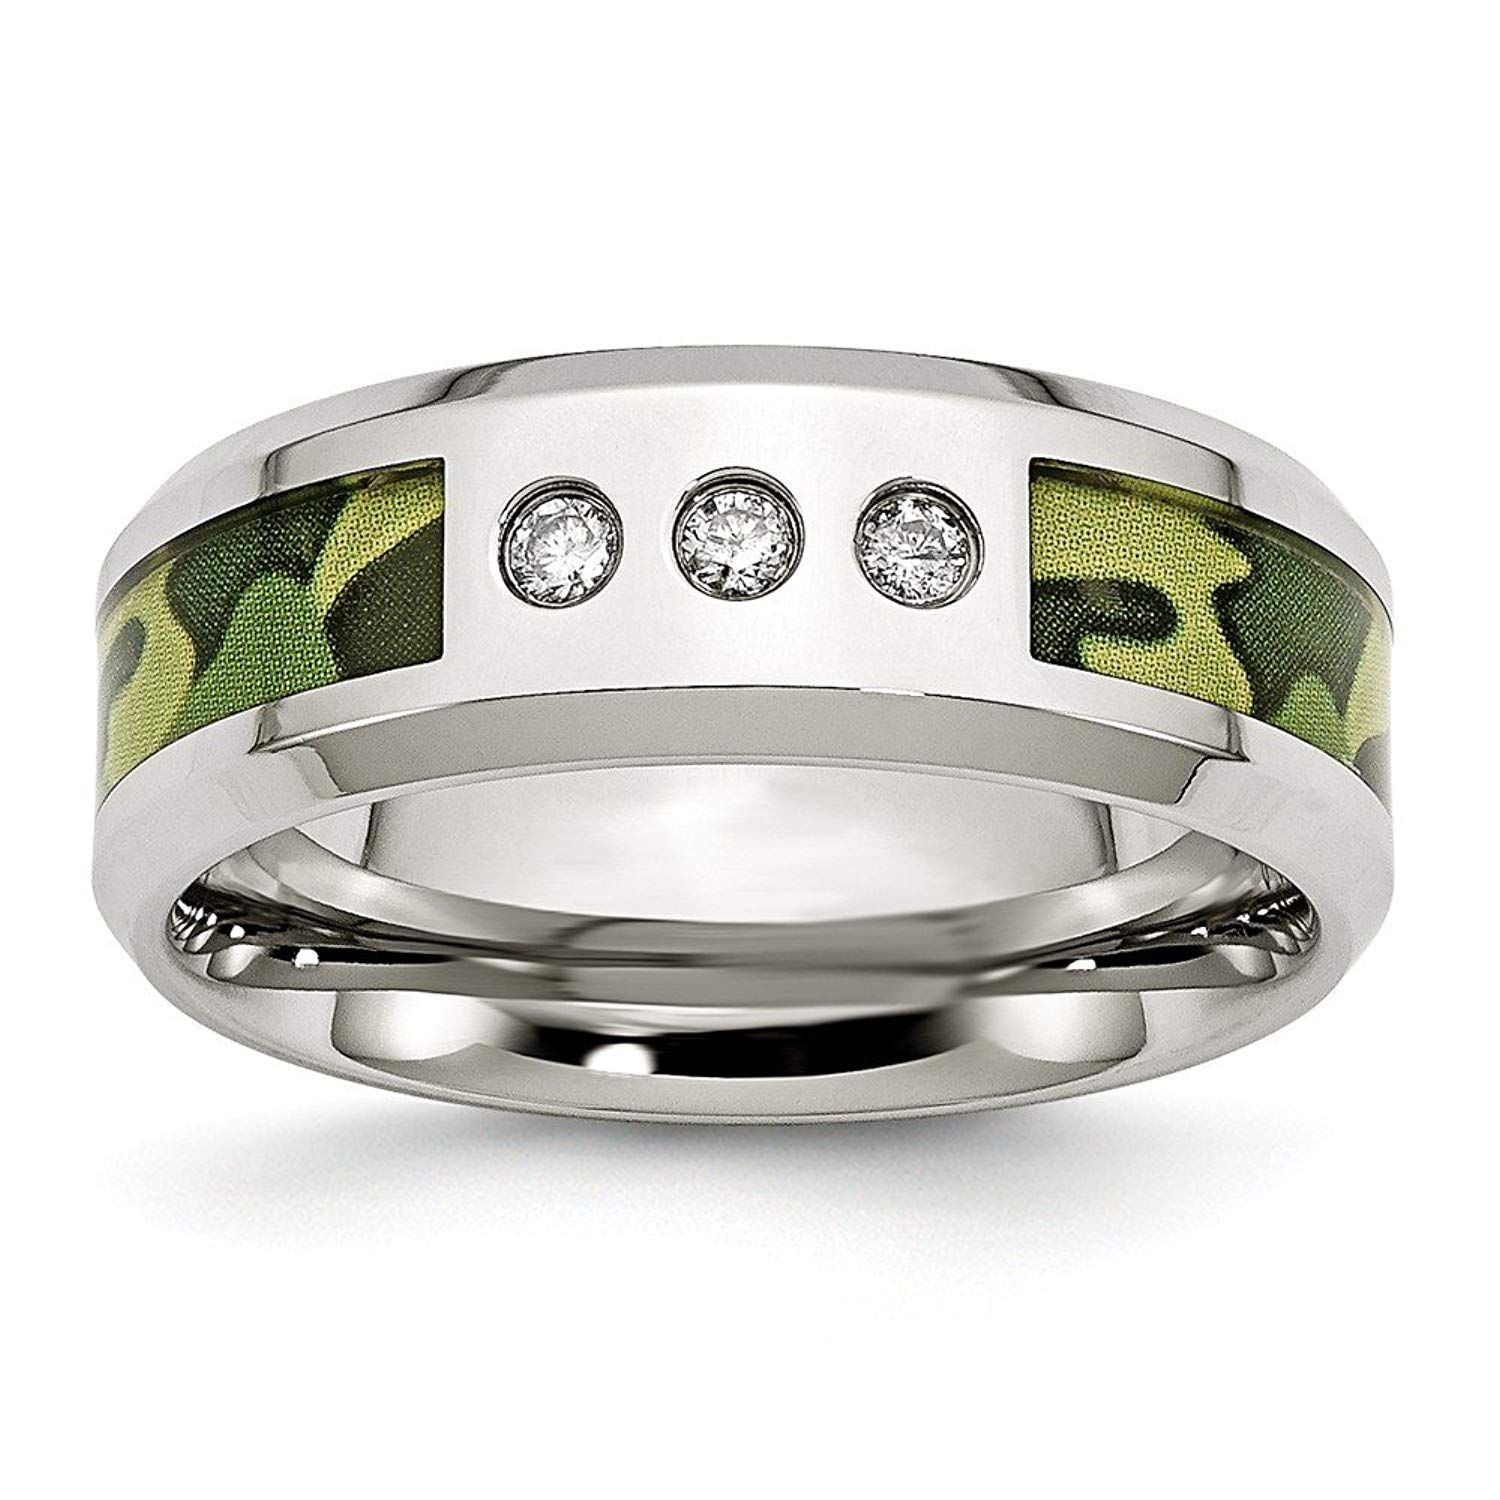 Jewelry Best Seller Stainless Steel Polished Camoflauge 1